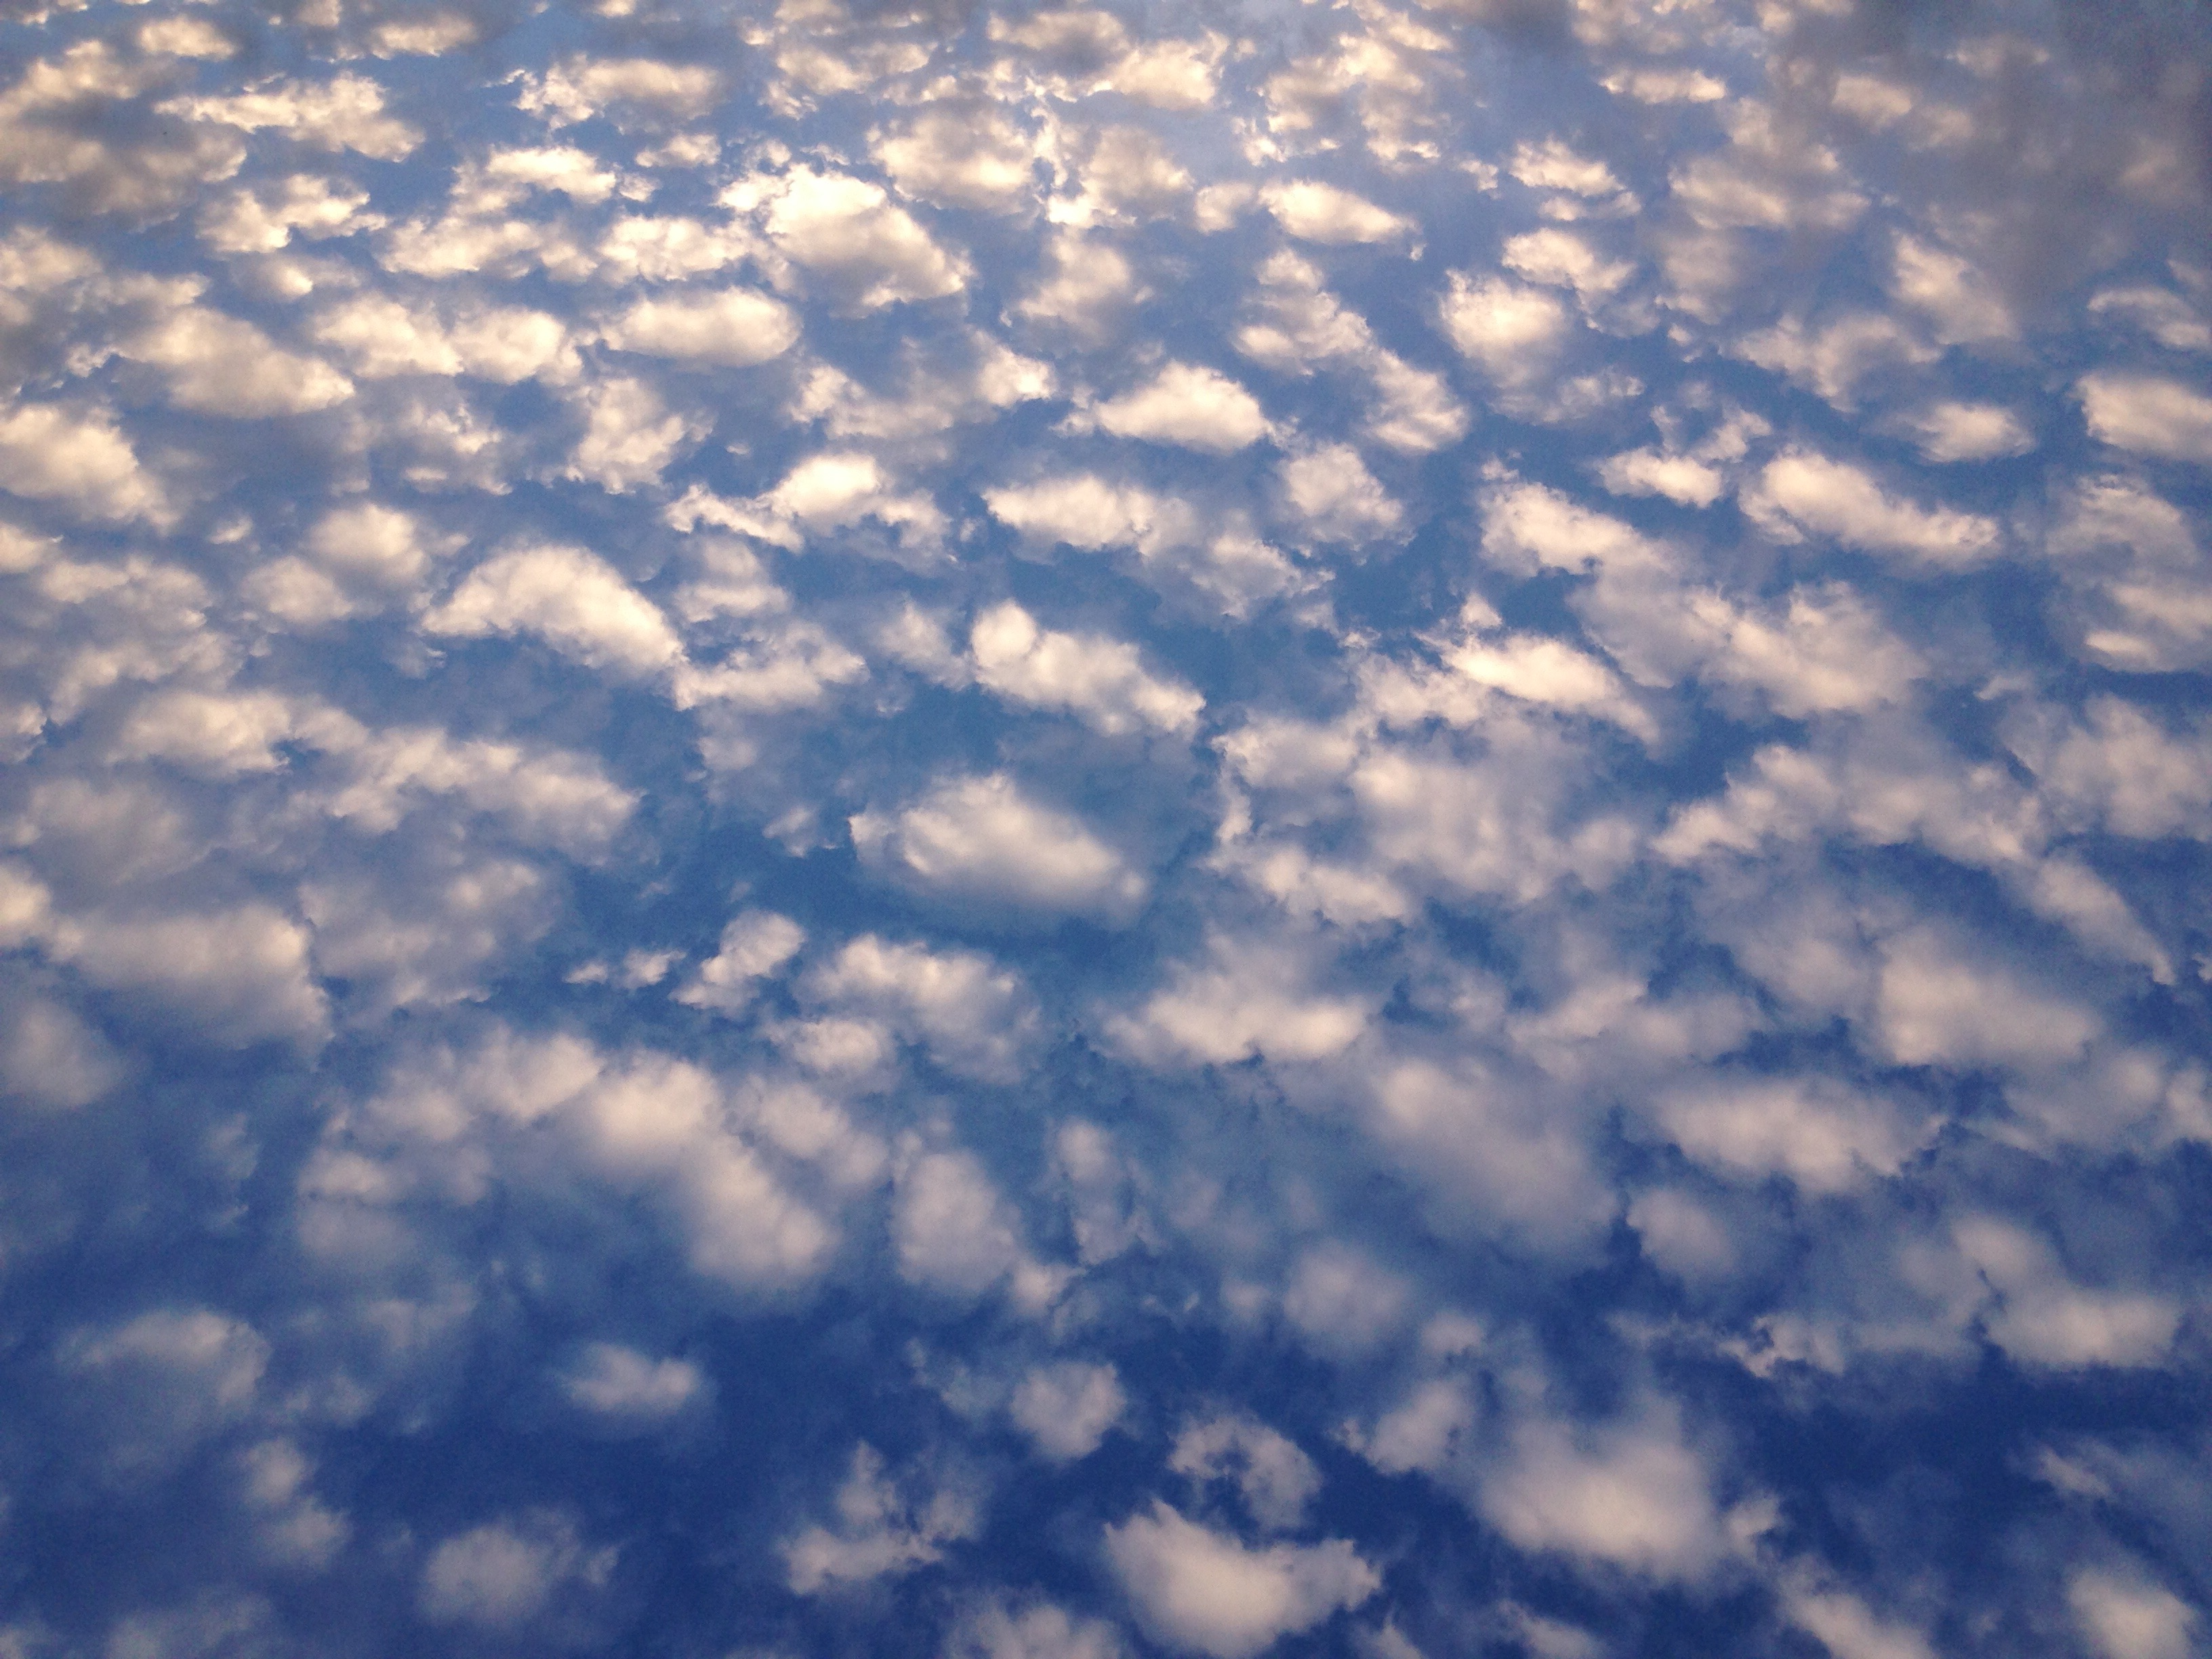 Clouds - day spent staring up